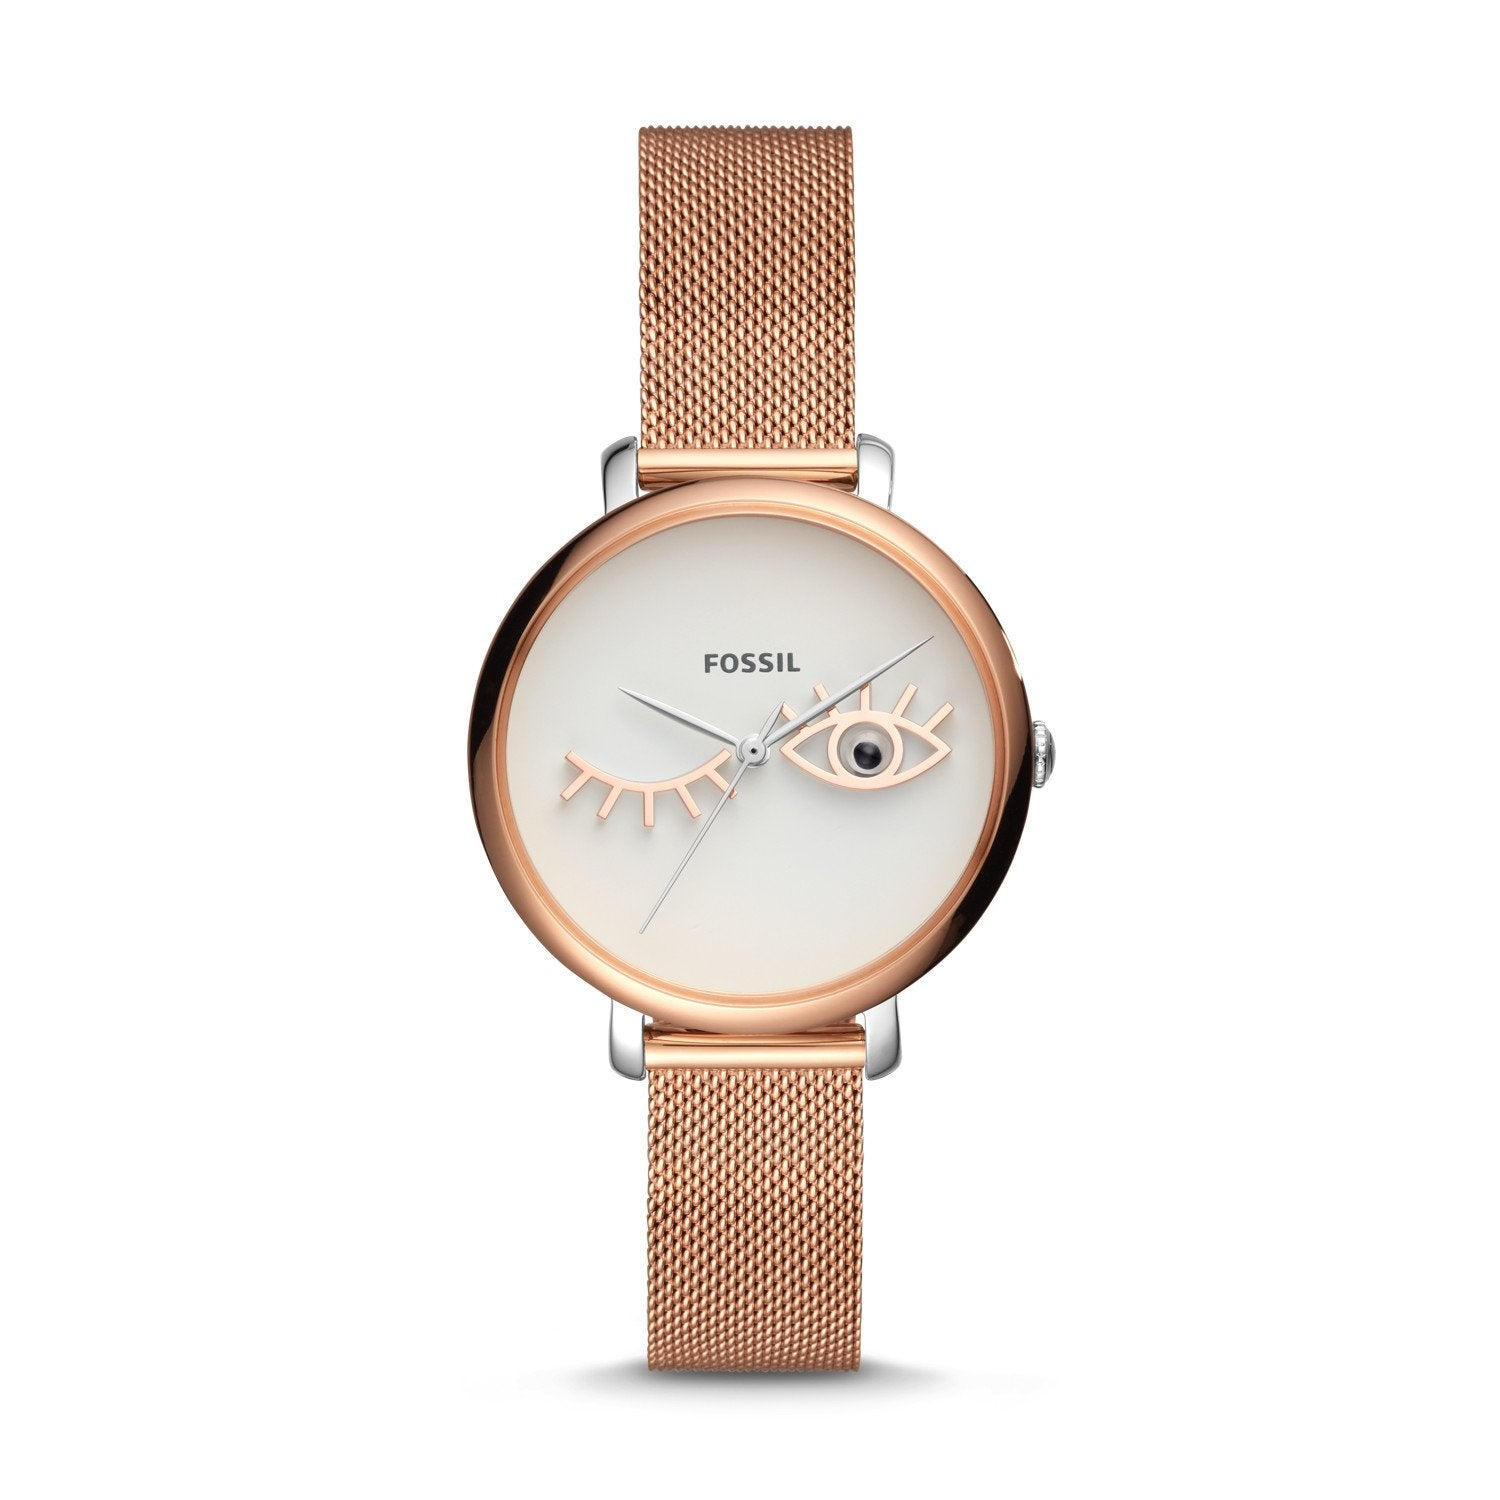 Fossil Ladies' Jacqueline Wink Eye Three-Hand Rose Gold Tone Stainless Steel Watch ES4414